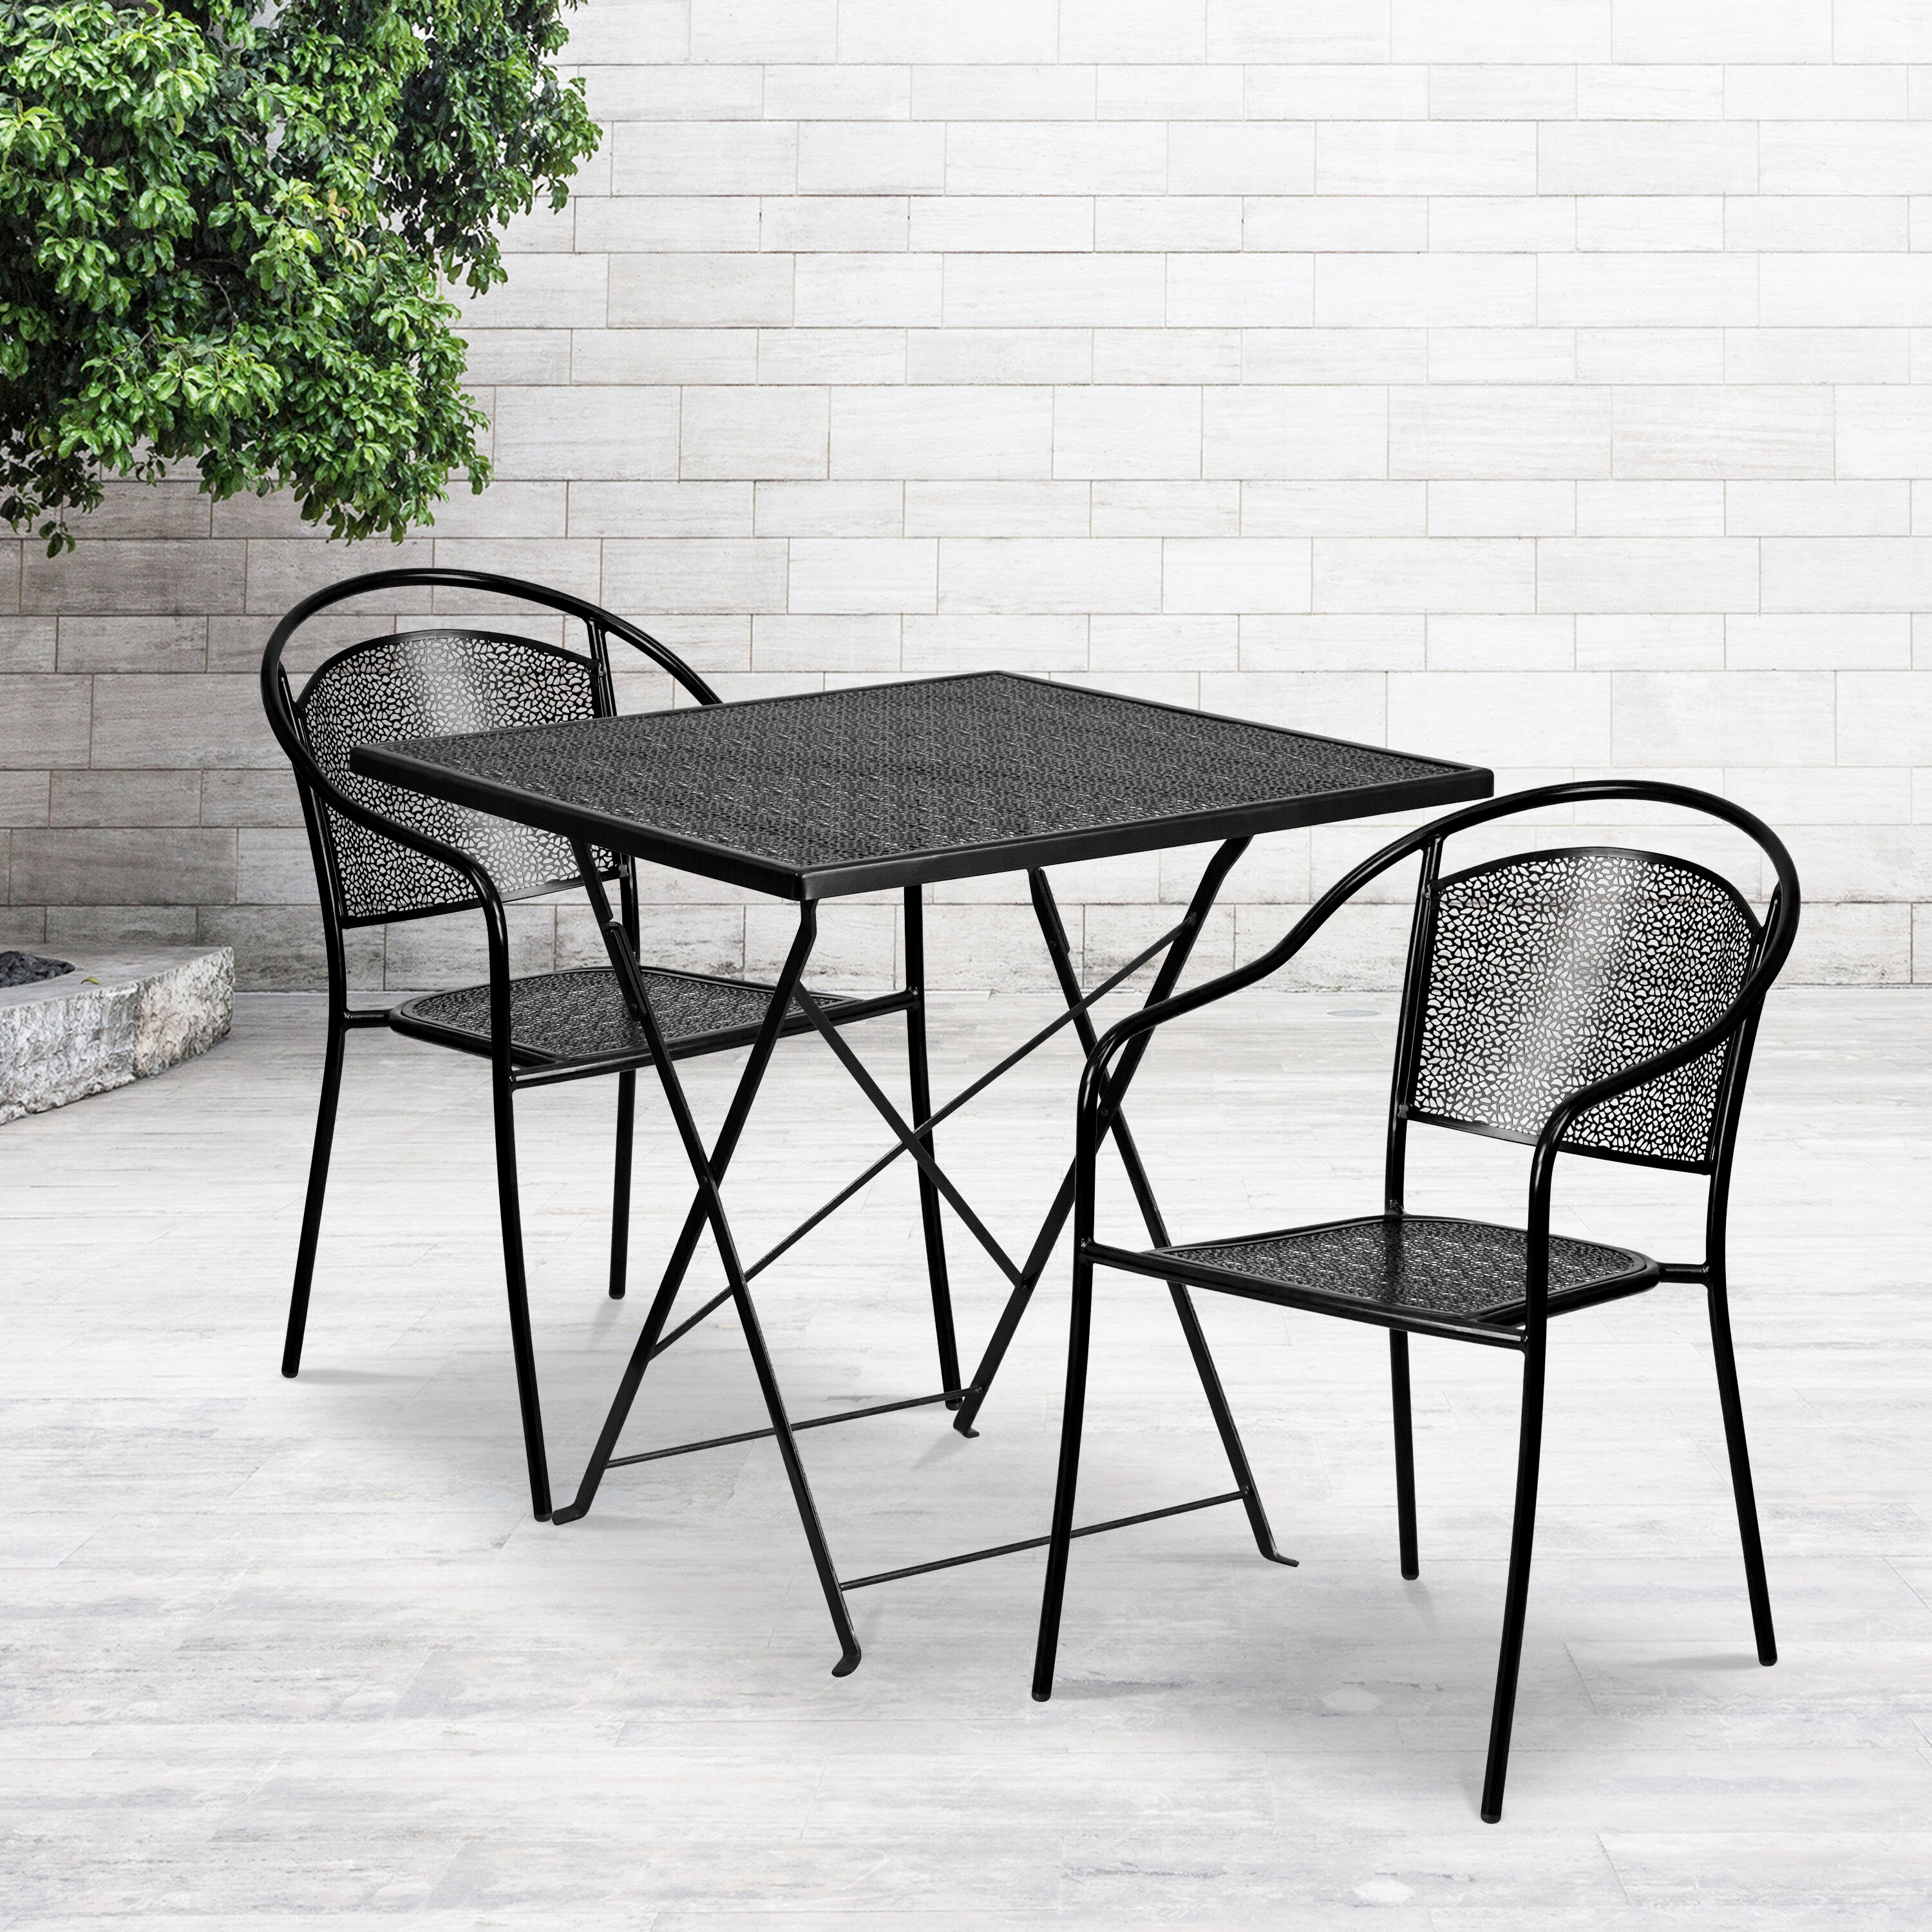 commercial grade 28 square black indoor outdoor steel folding patio table set with 2 round back chairs